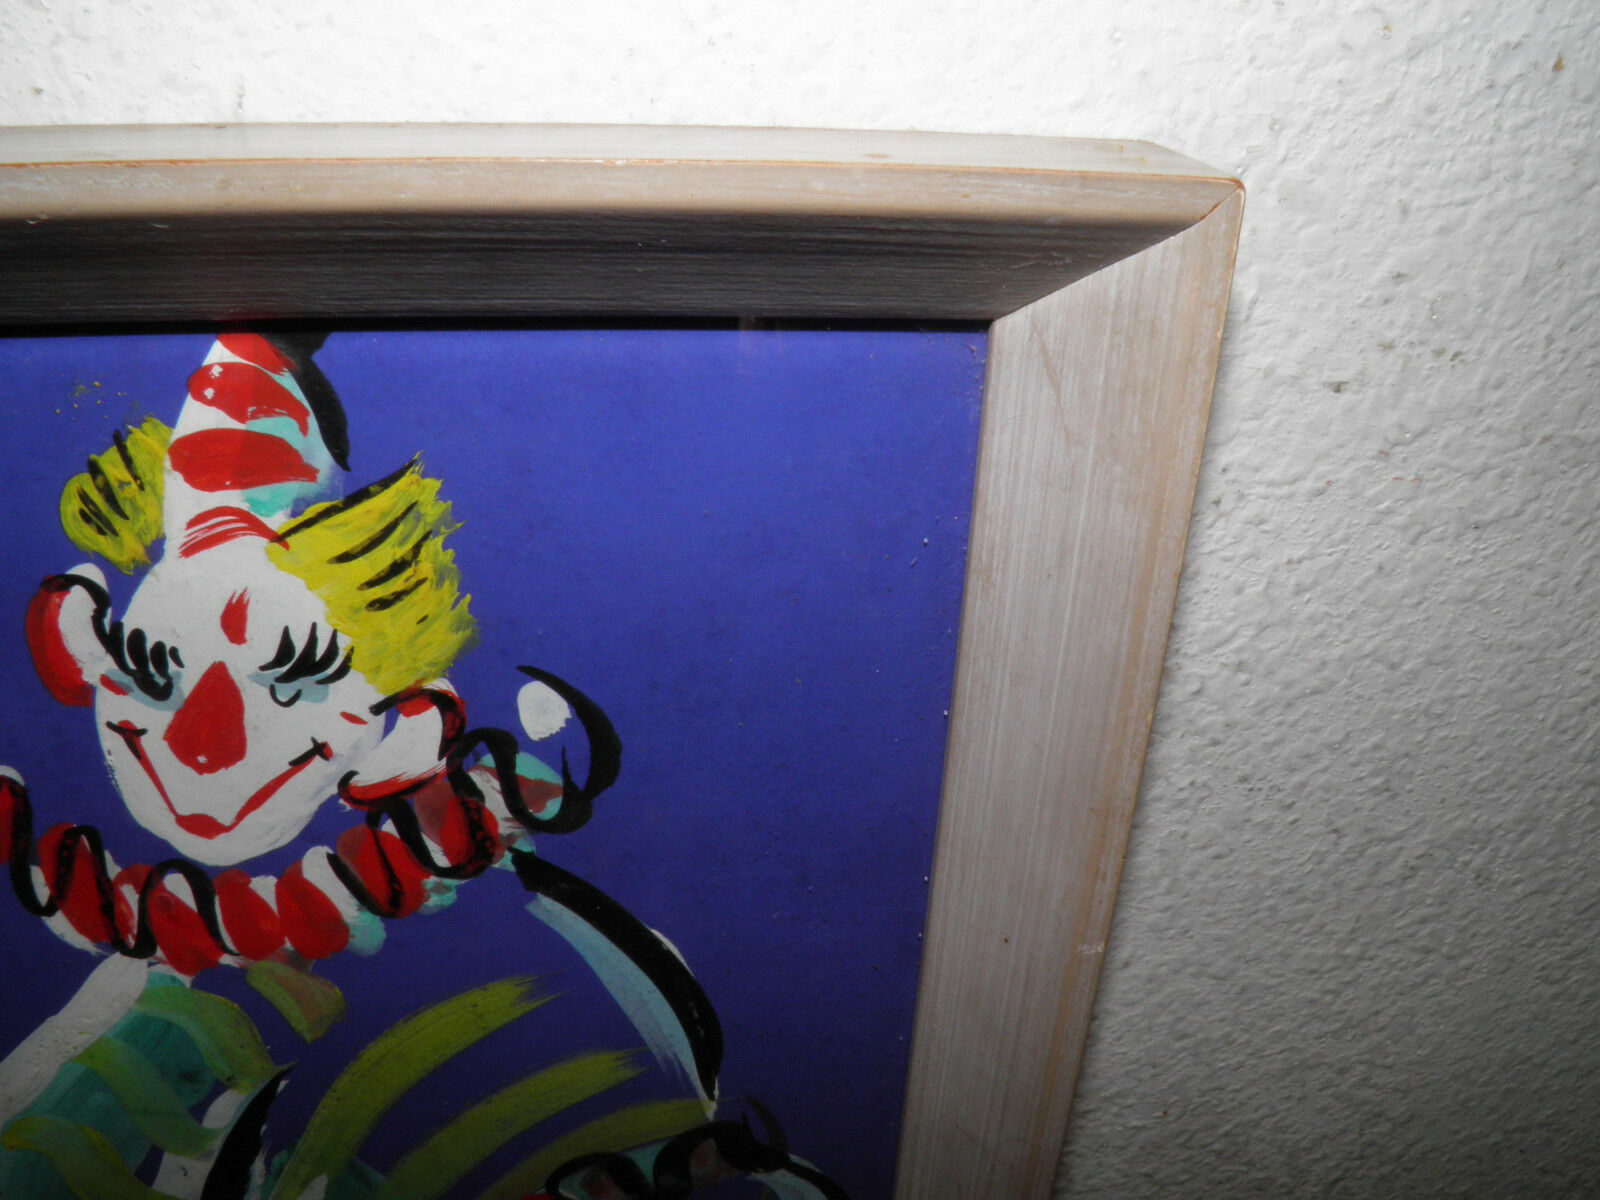 SHIRLEY CLEMENT AMERICAN 1922-2002 ORIGINAL CLOWN PAINTING INITIAL SC 9.5x12.5  - $378.84